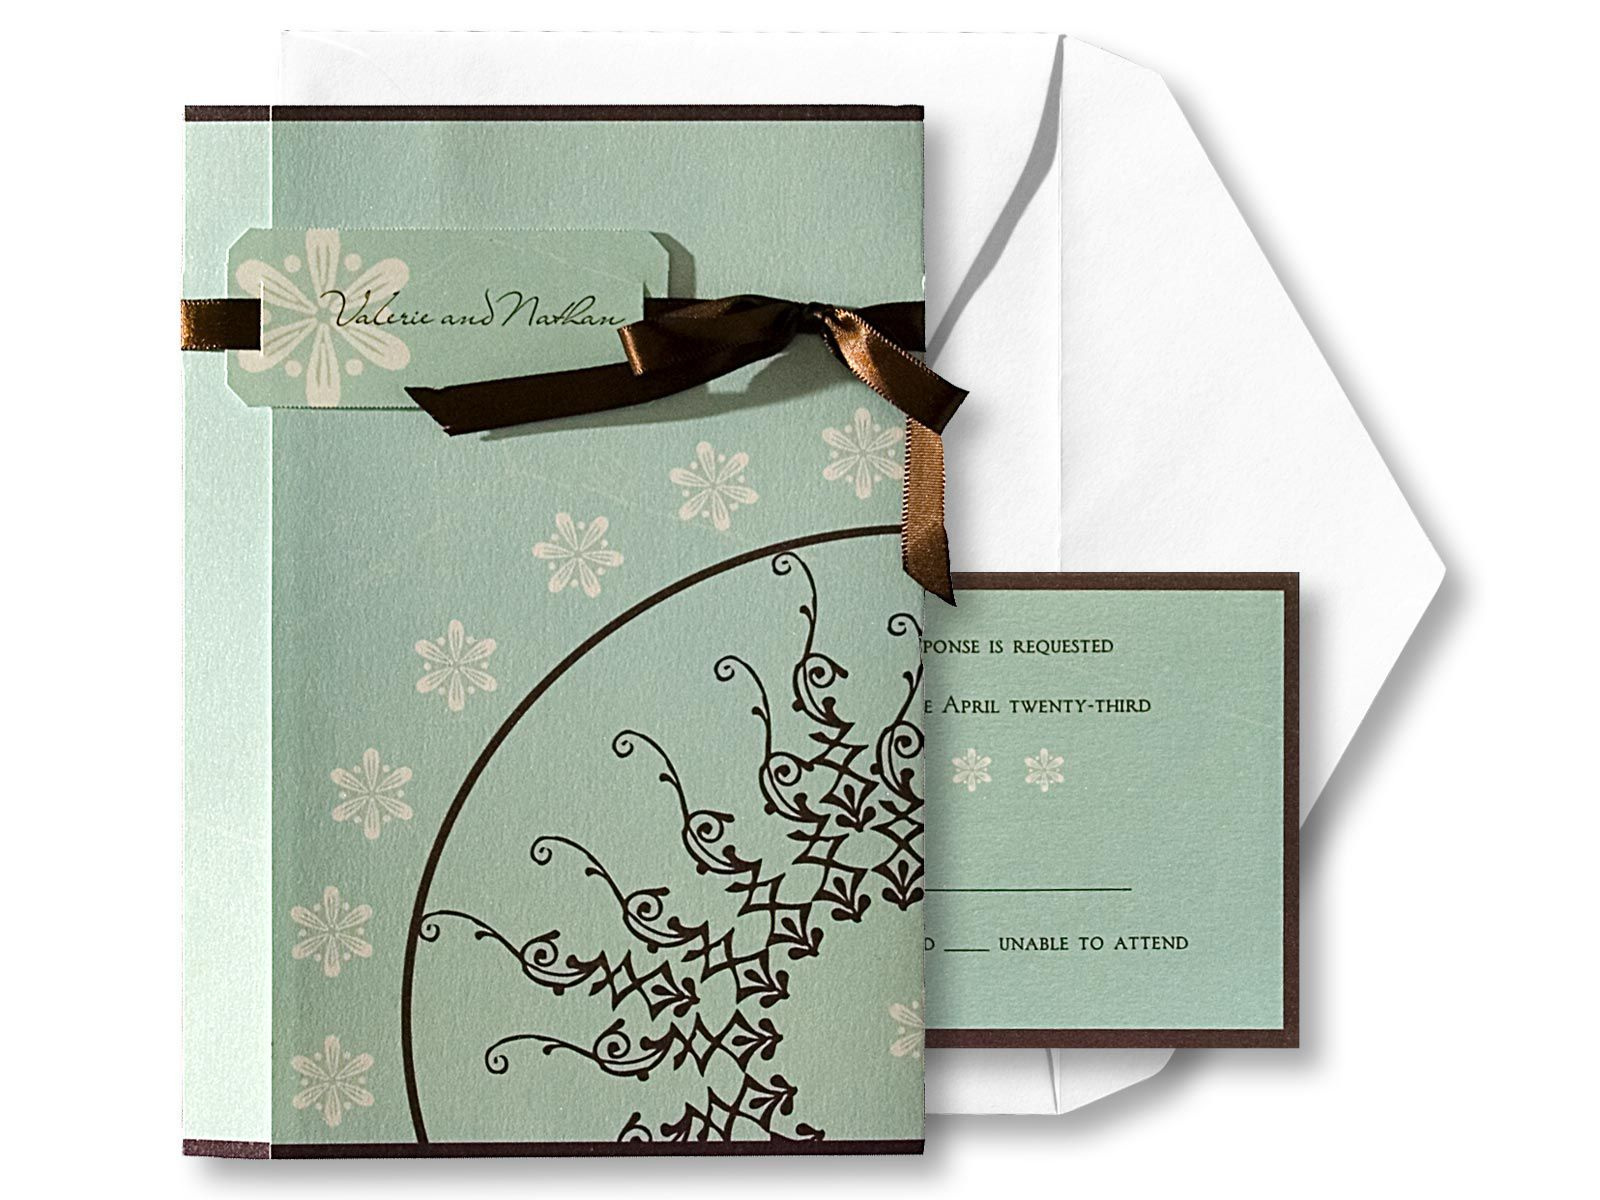 15 Samples of Wedding Invitations Wording funny wedding